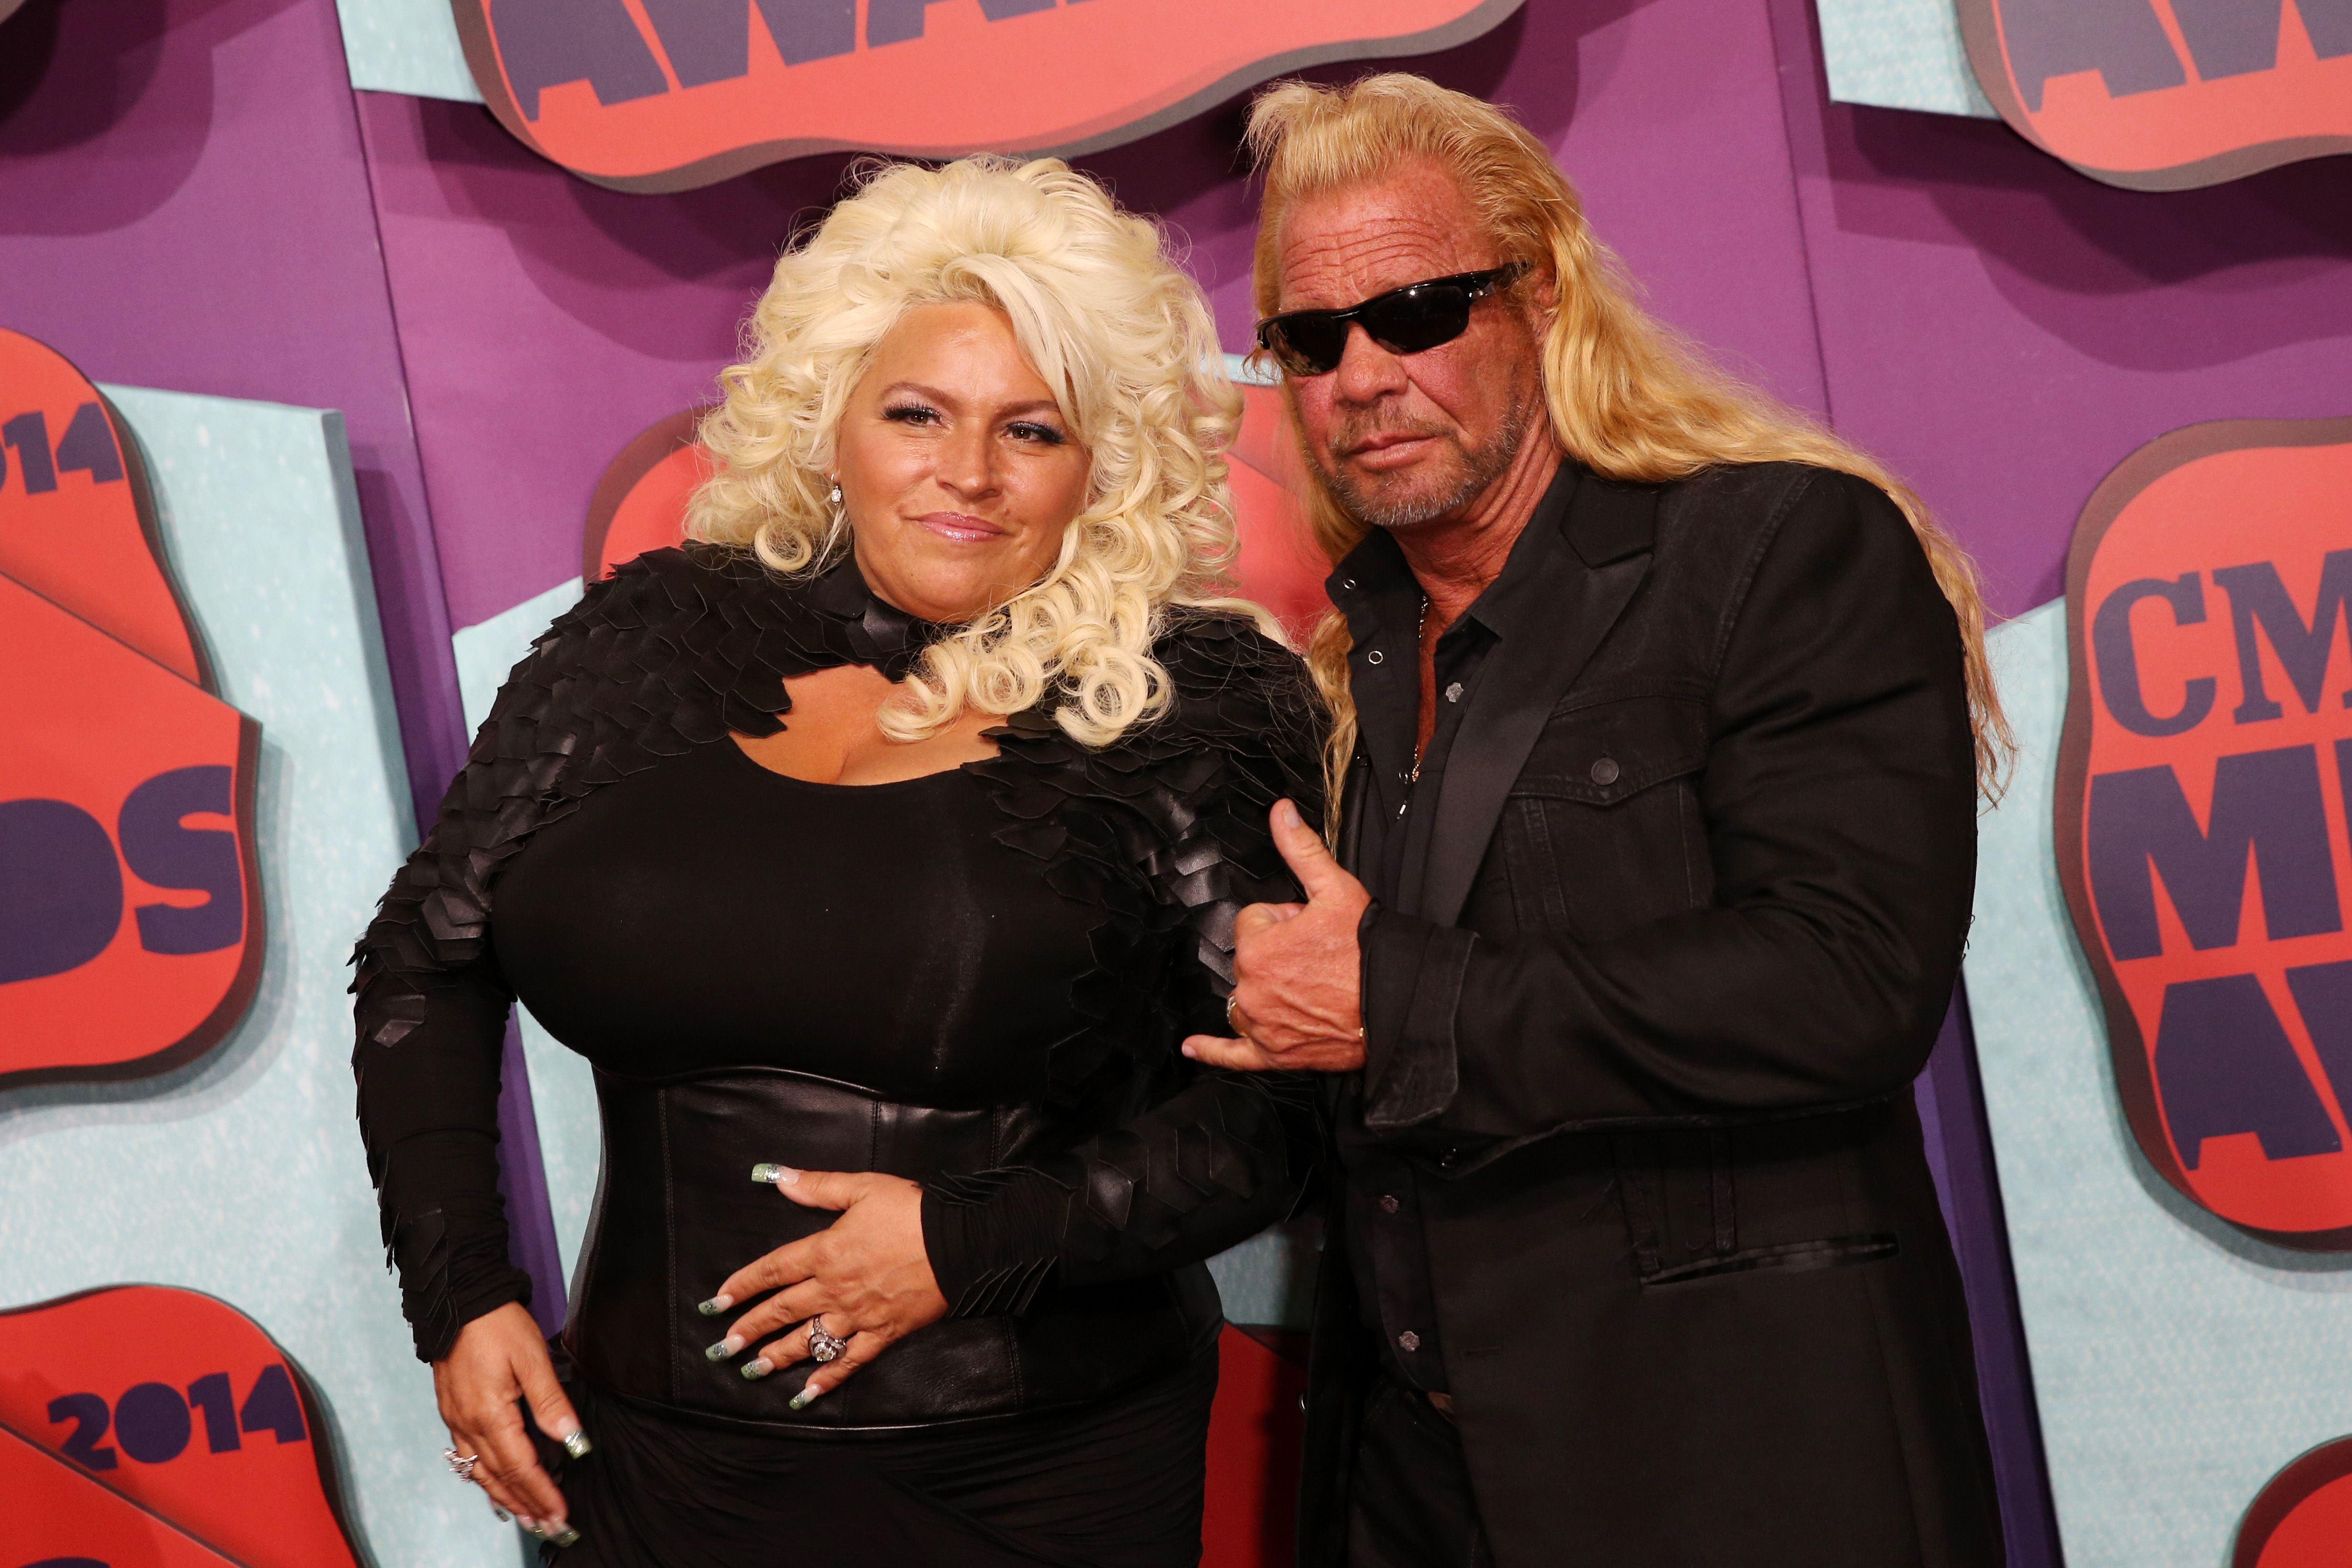 Beth and Duane Chapman at the CMT Music Awards at the Bridgestone Arena on June 4, 2014, in Nashville, Tennessee | Photo: Terry Wyatt/FilmMagic/Getty Images